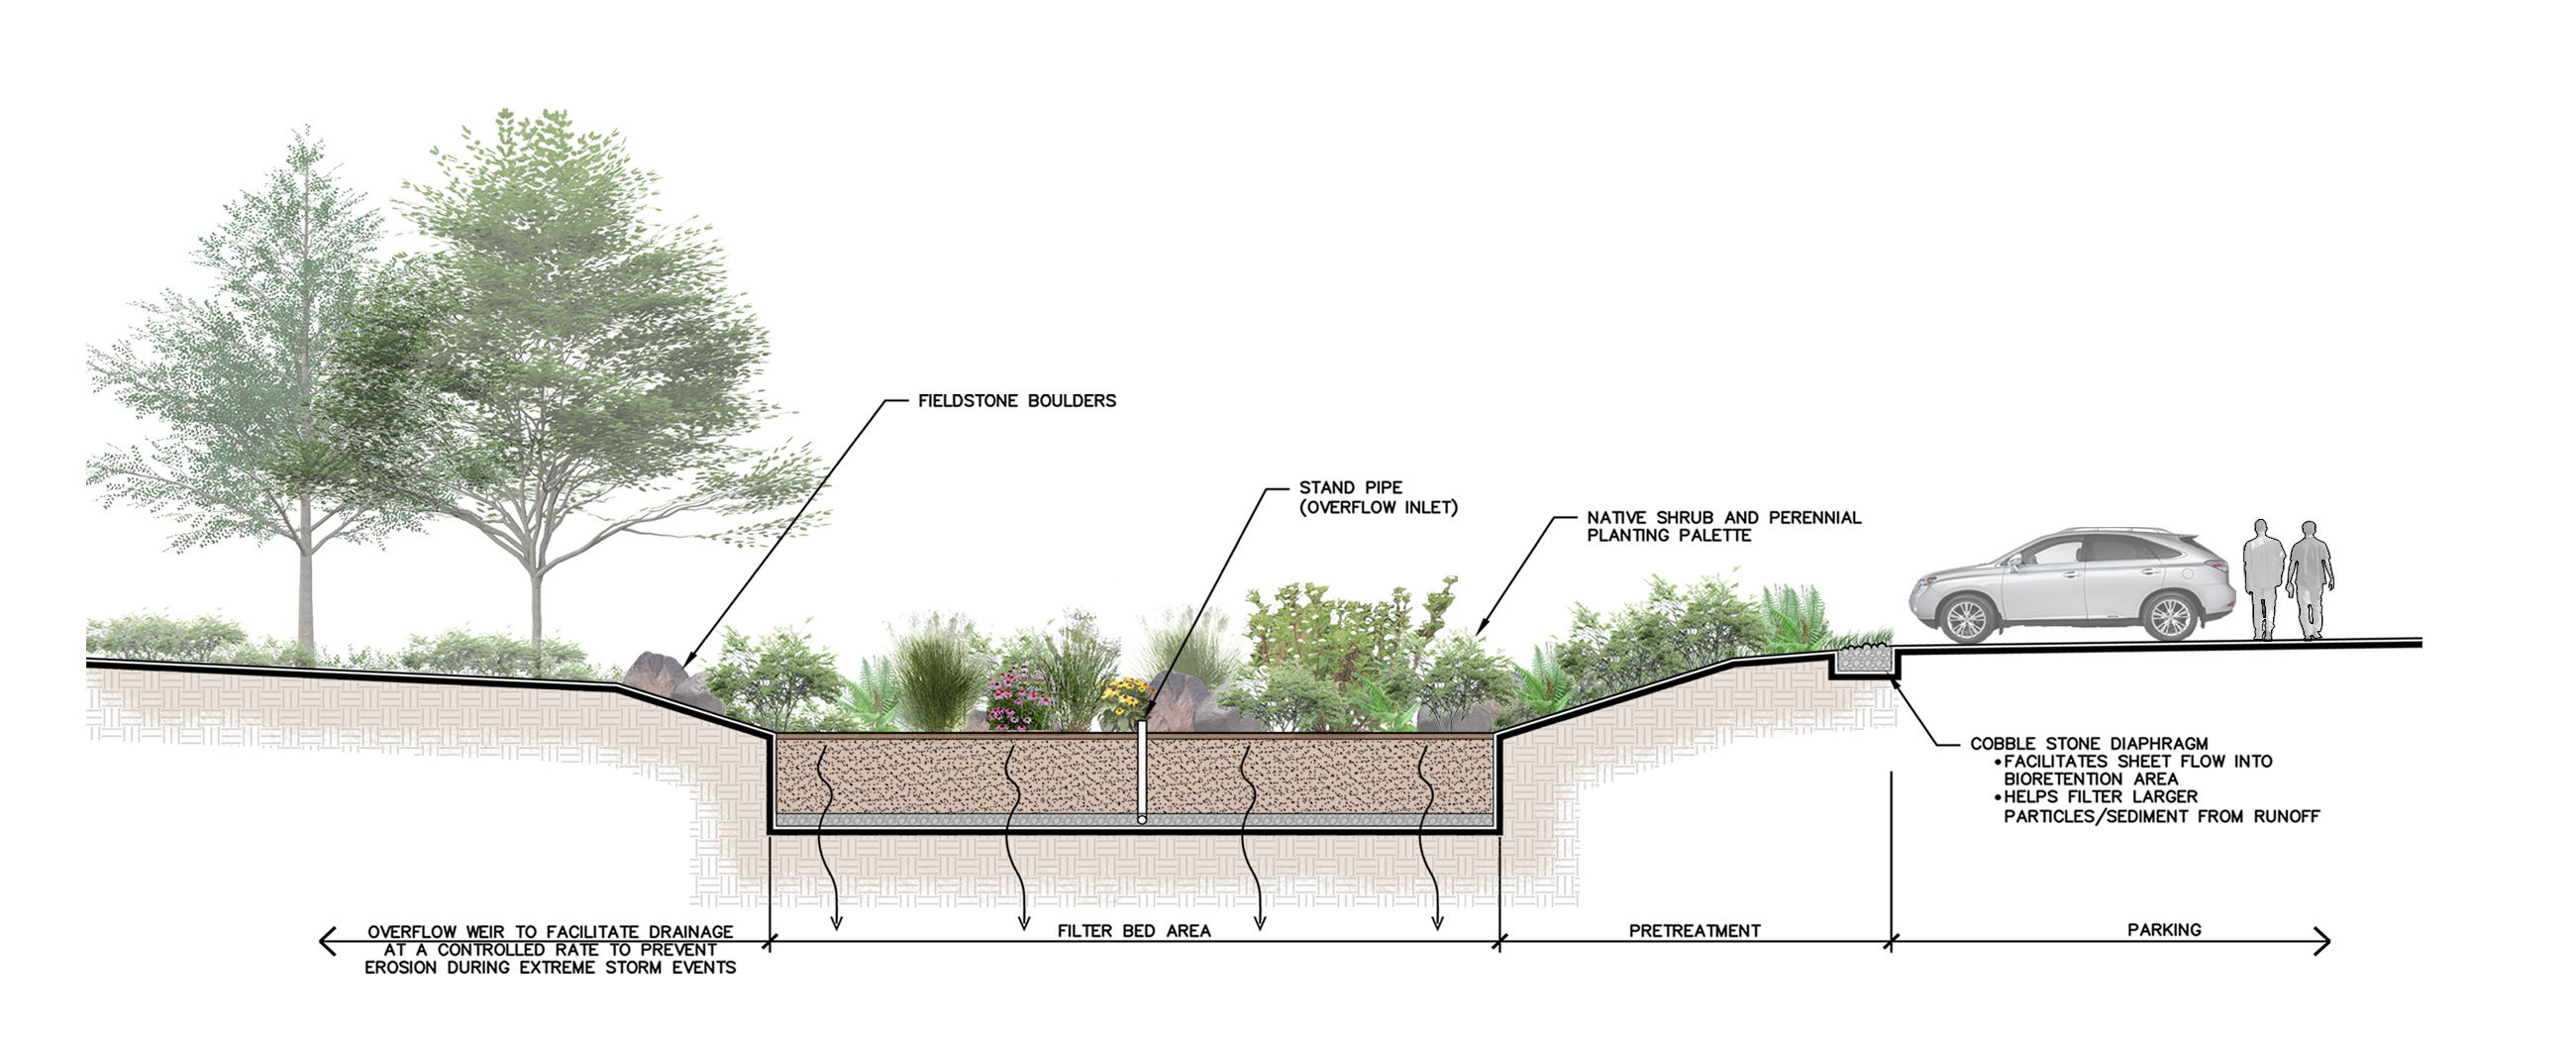 Nysdec Stormwater 2015 Updates The La Group Landscape Architecture And Engineering Pc